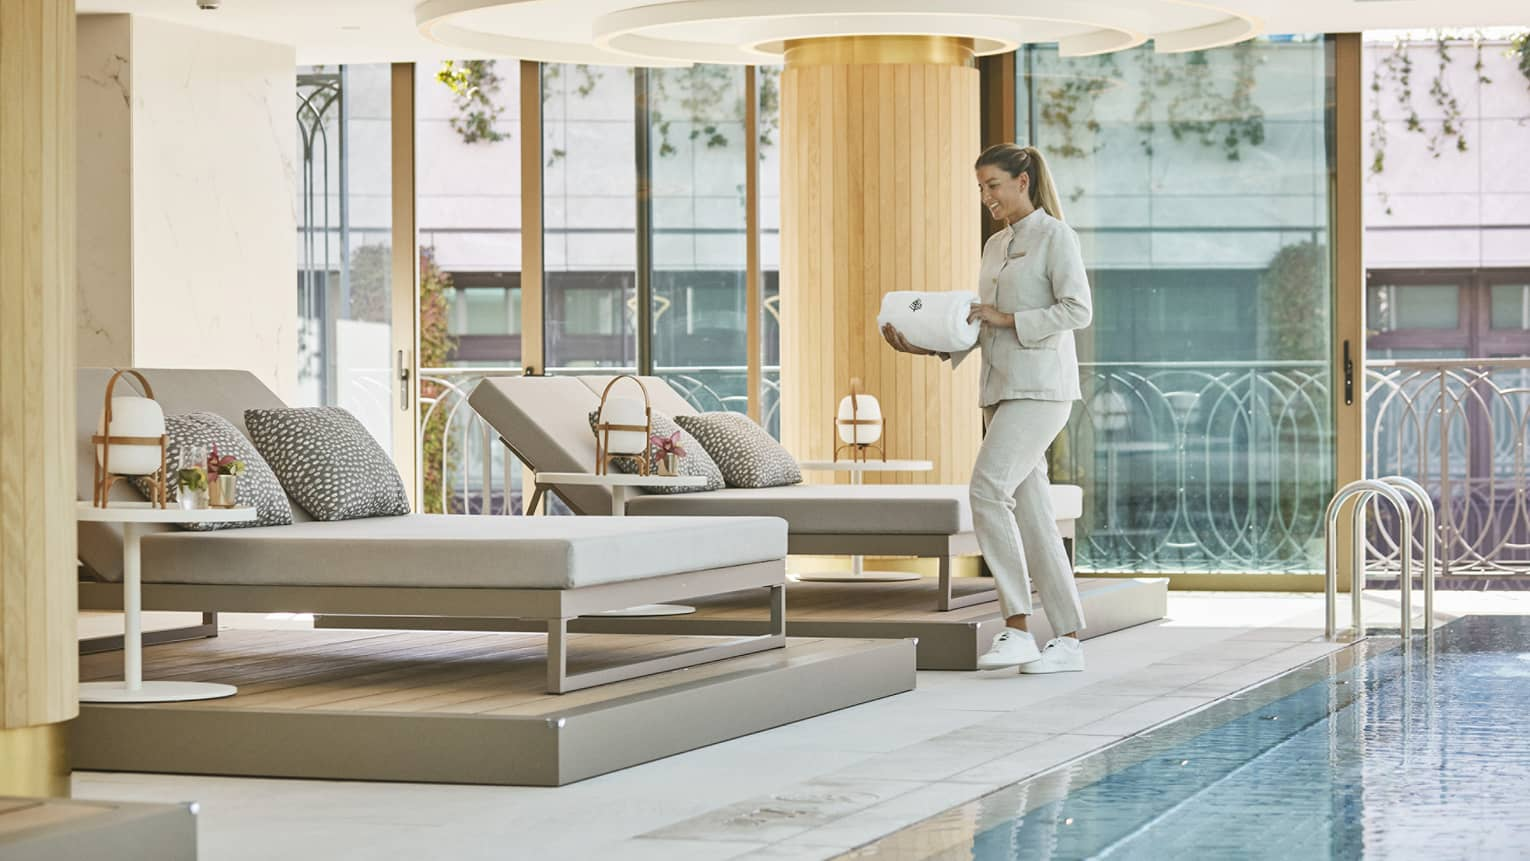 A woman carrying white towels to cushioned lounge seat next to indoor pool